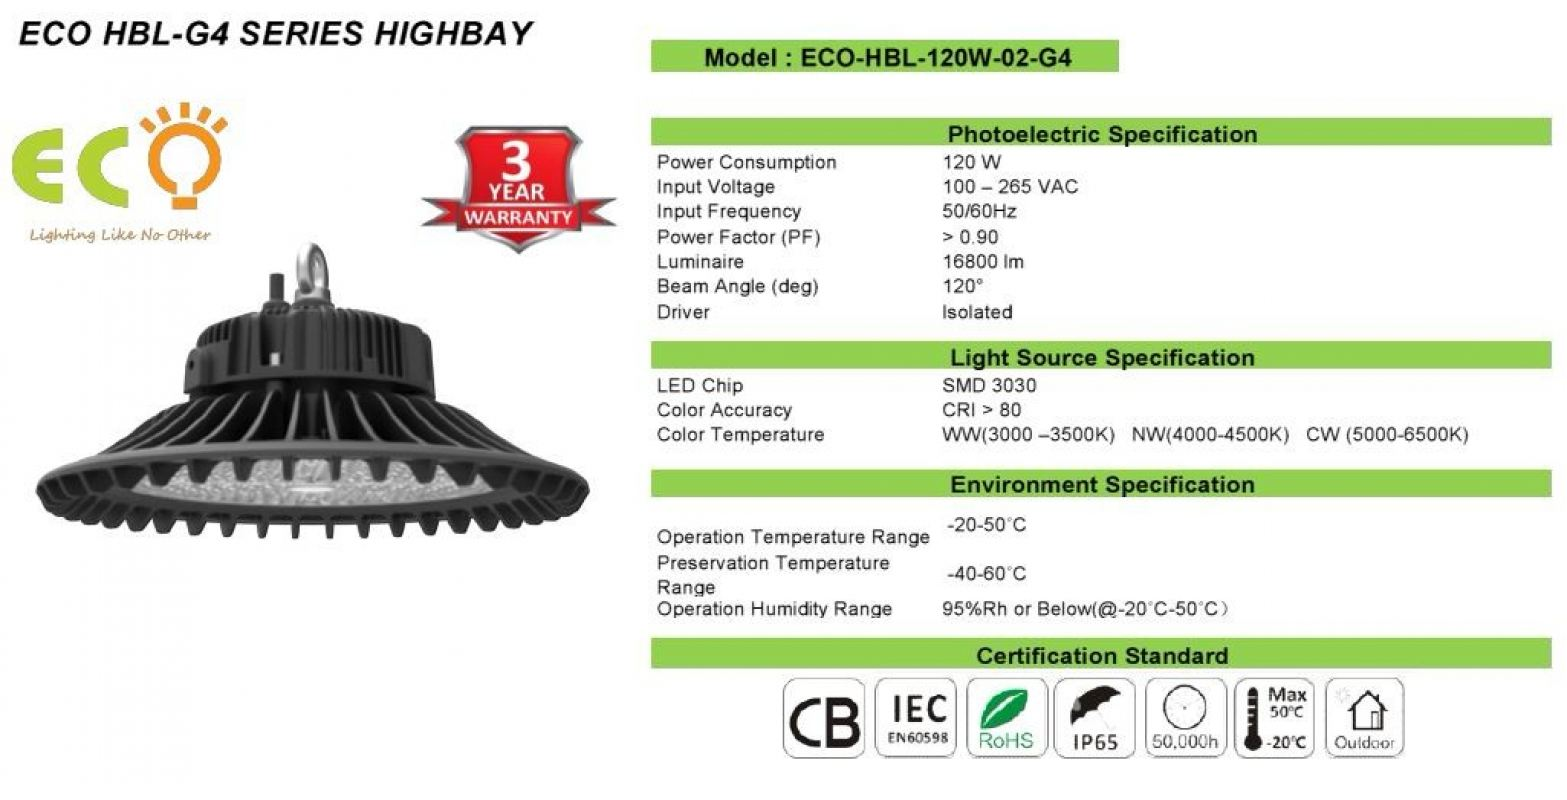 ECO-HBL-120W-G4 SERIES LED G4-SERIES LED HBL-G4 SERIES Kluang, Johor, Malaysia Supplier Supply Manufacturer | ECO LED Lighting Solution